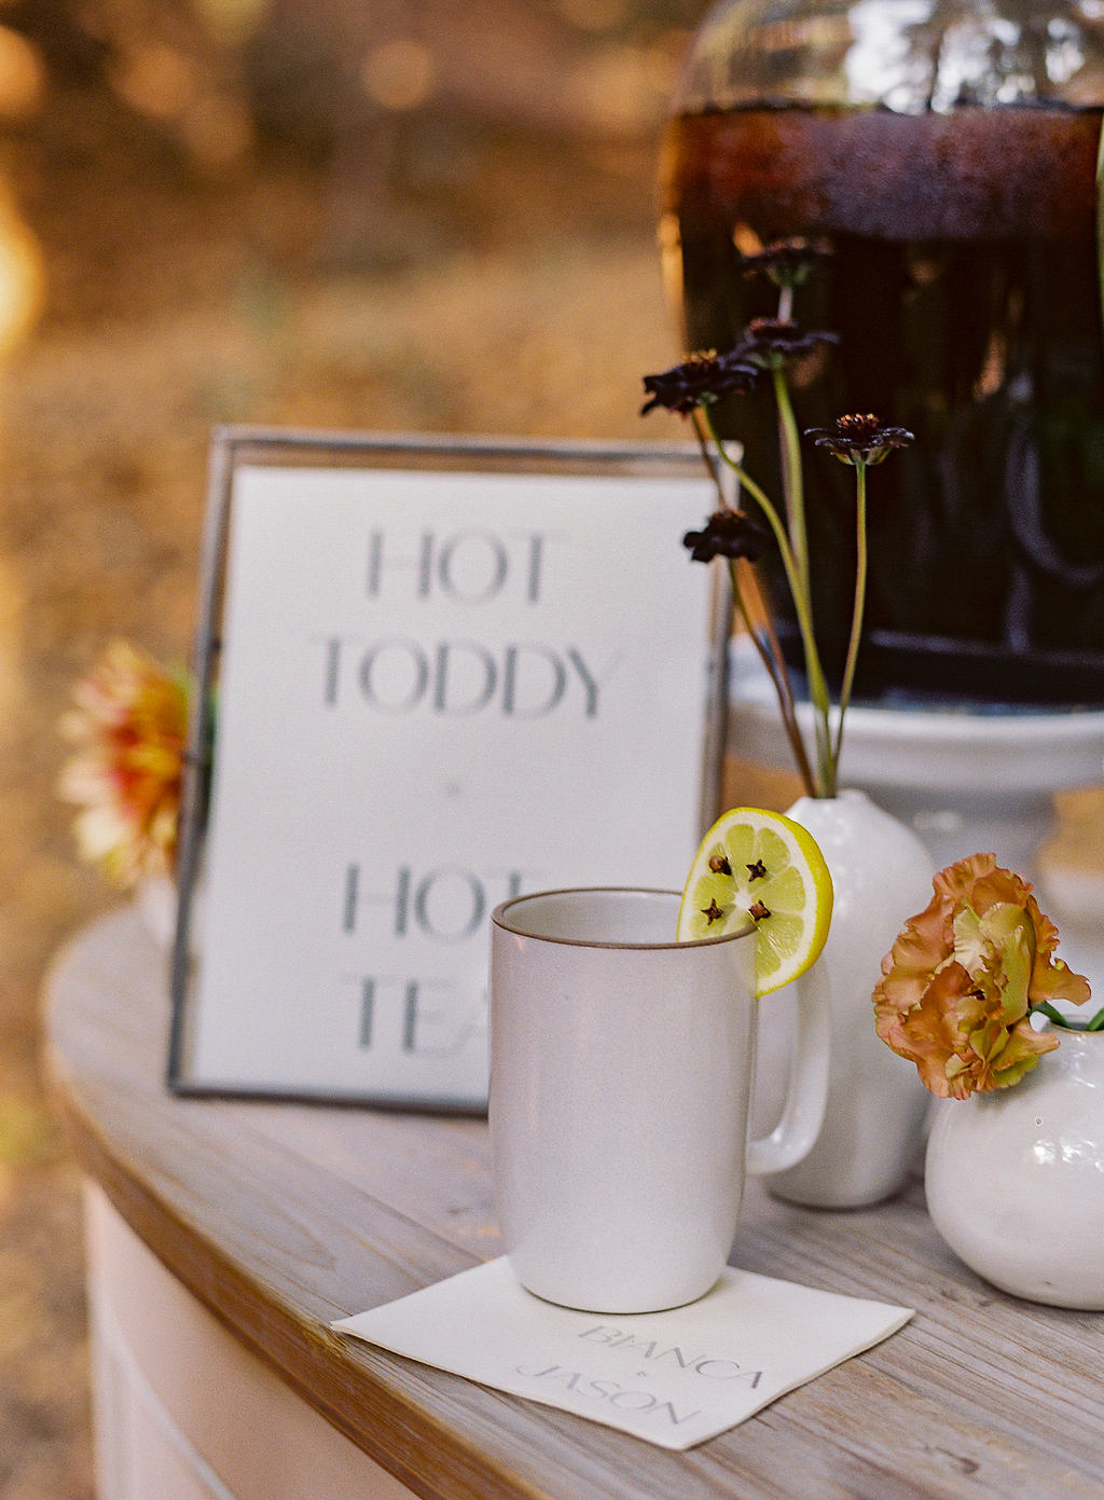 hot toddy in white mug on wooden table